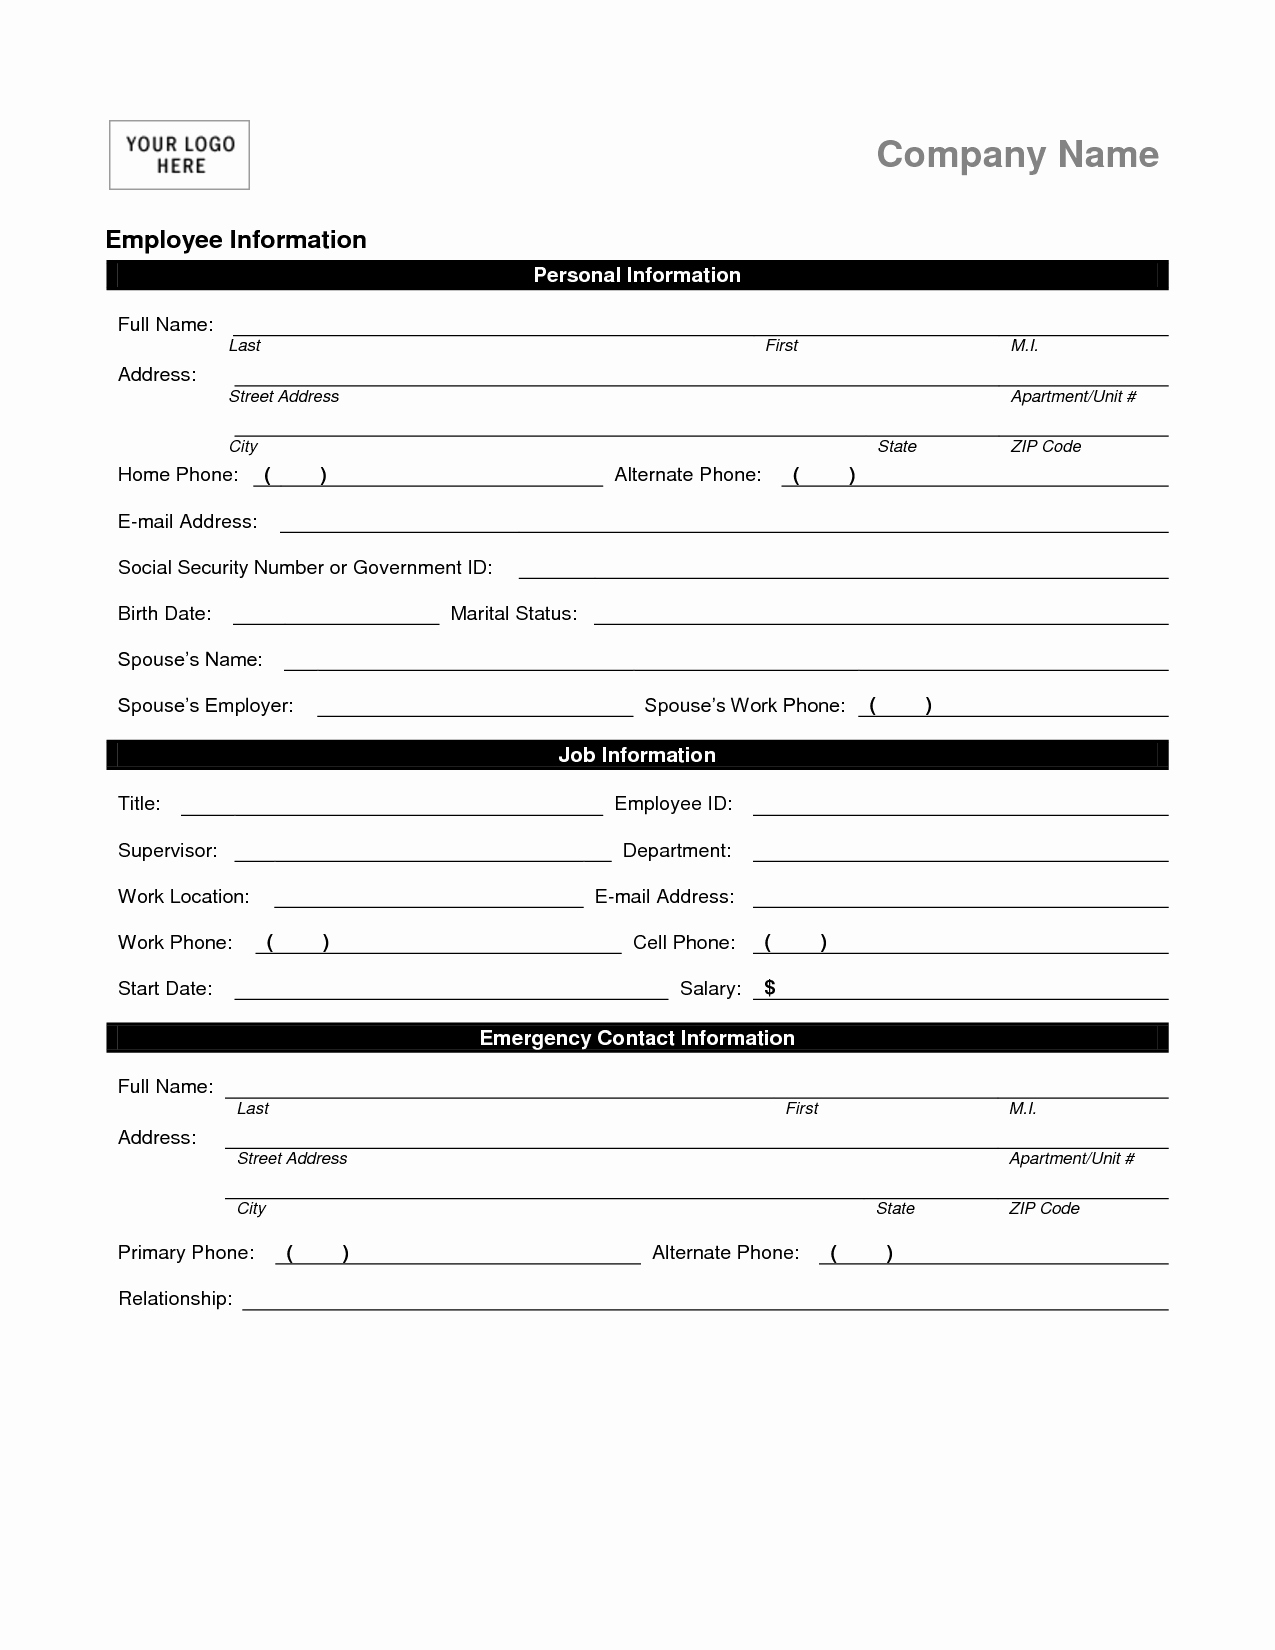 Employees Personal Information form Awesome Employee Personal Information form Template